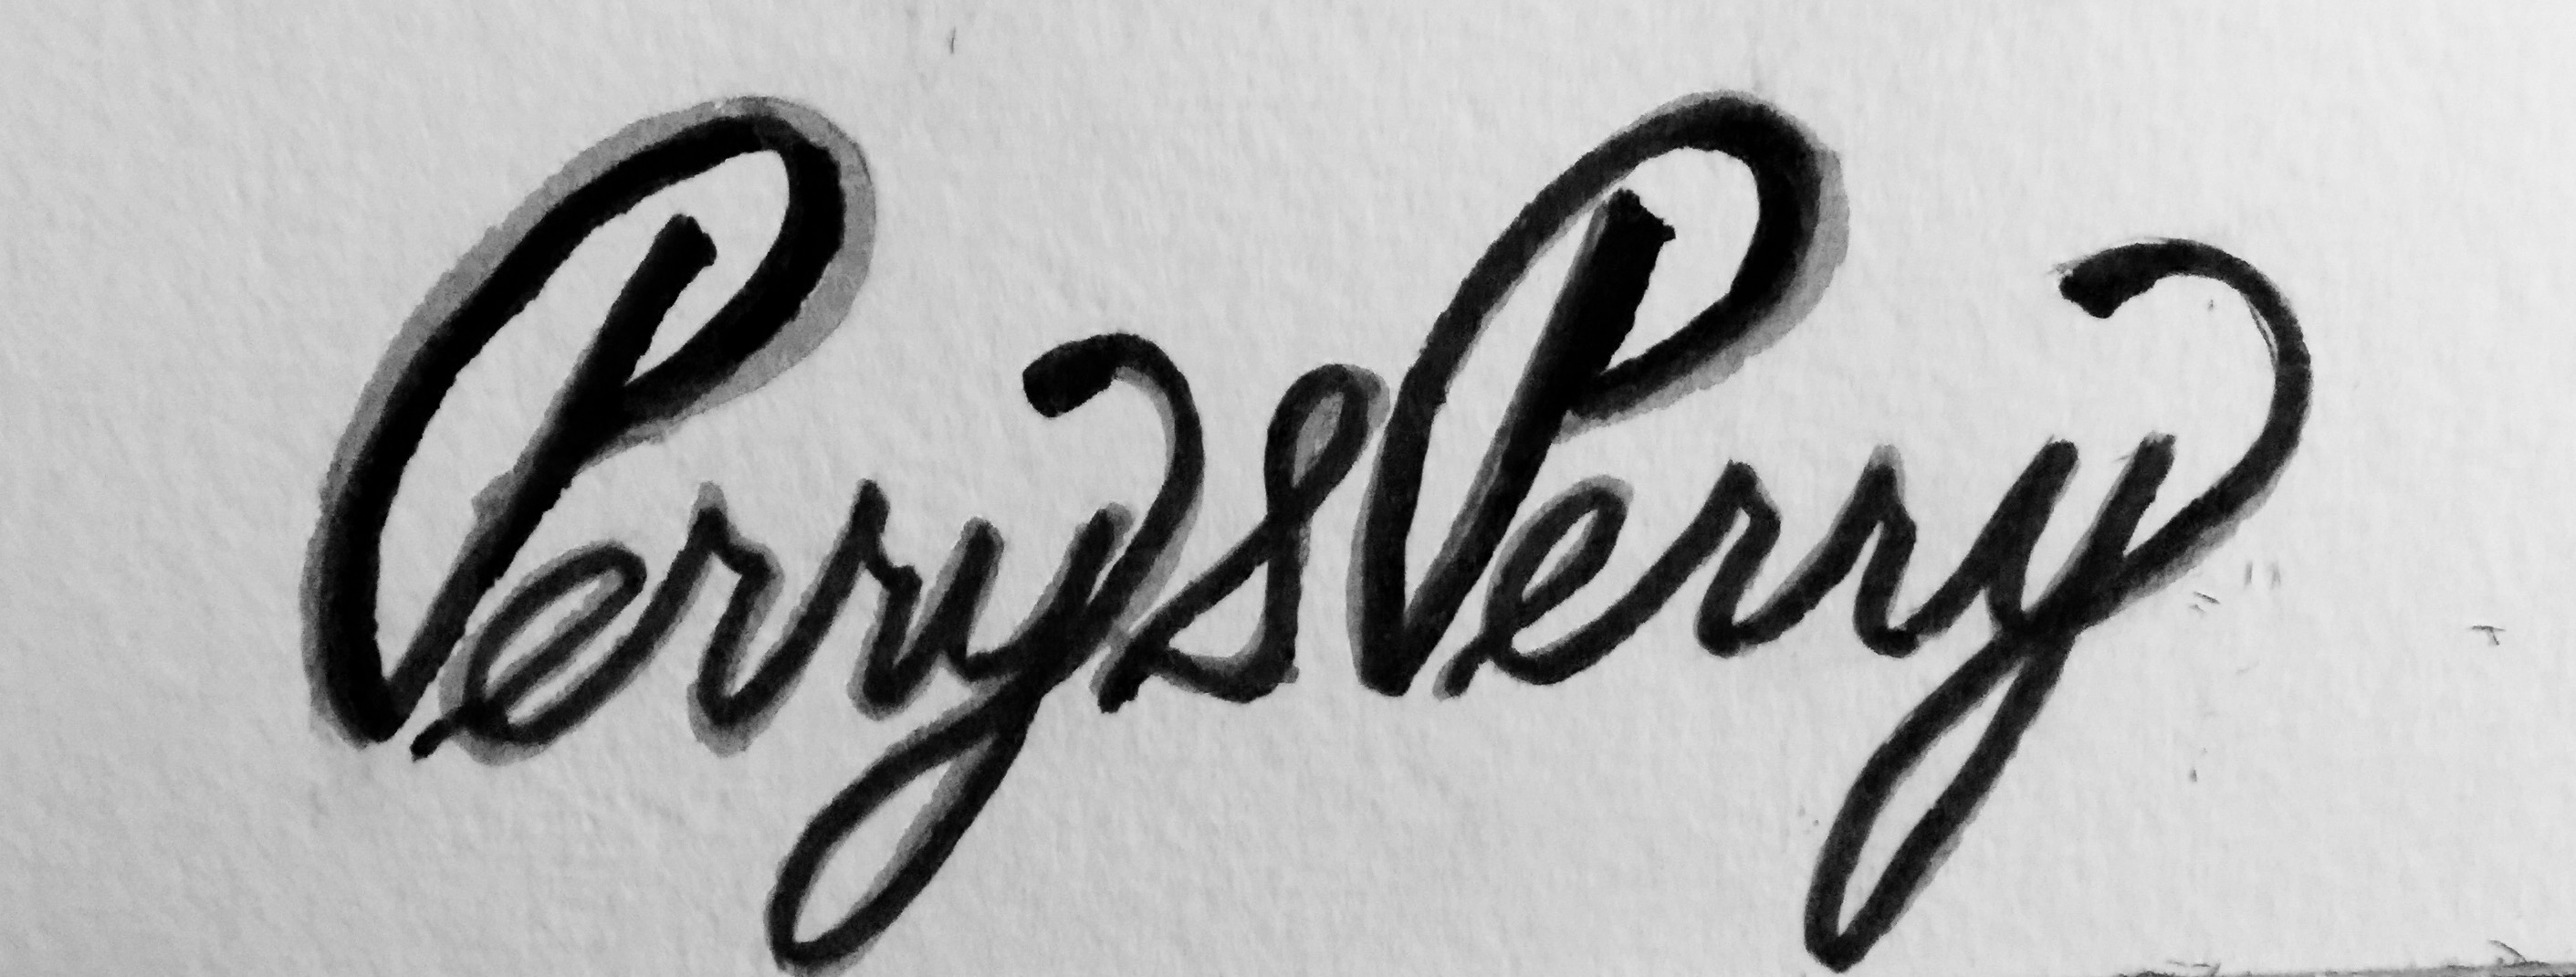 Perry&perry's Signature